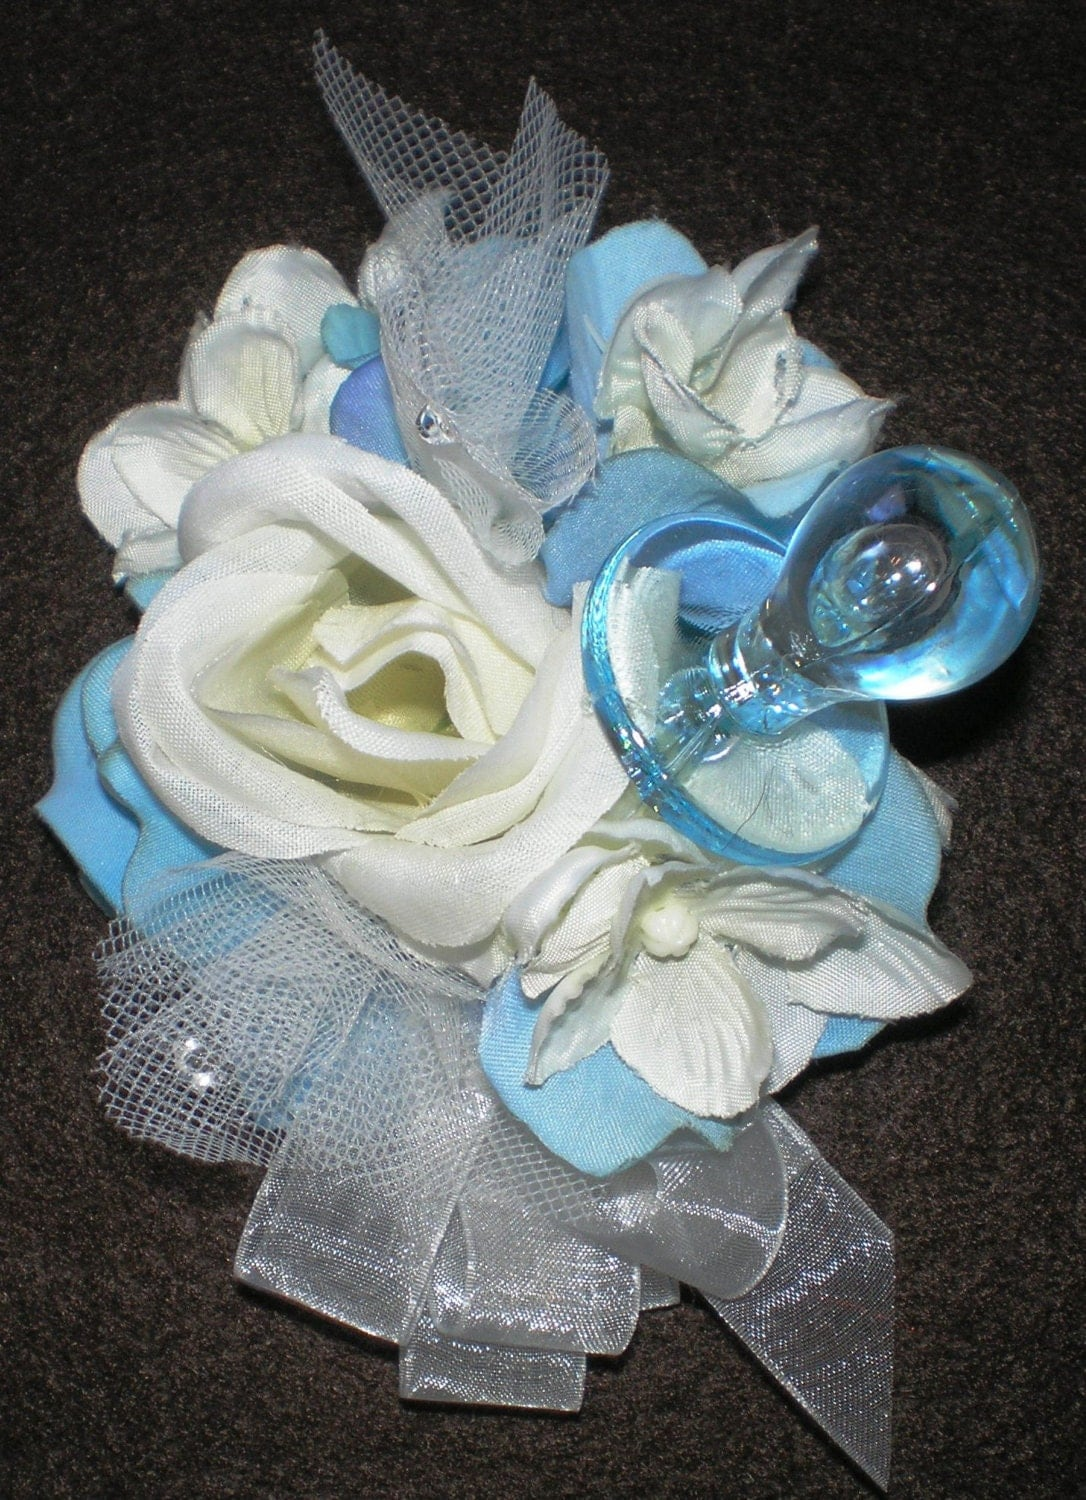 blue baby boy satin ribbon rose corsage wrist corsage baby